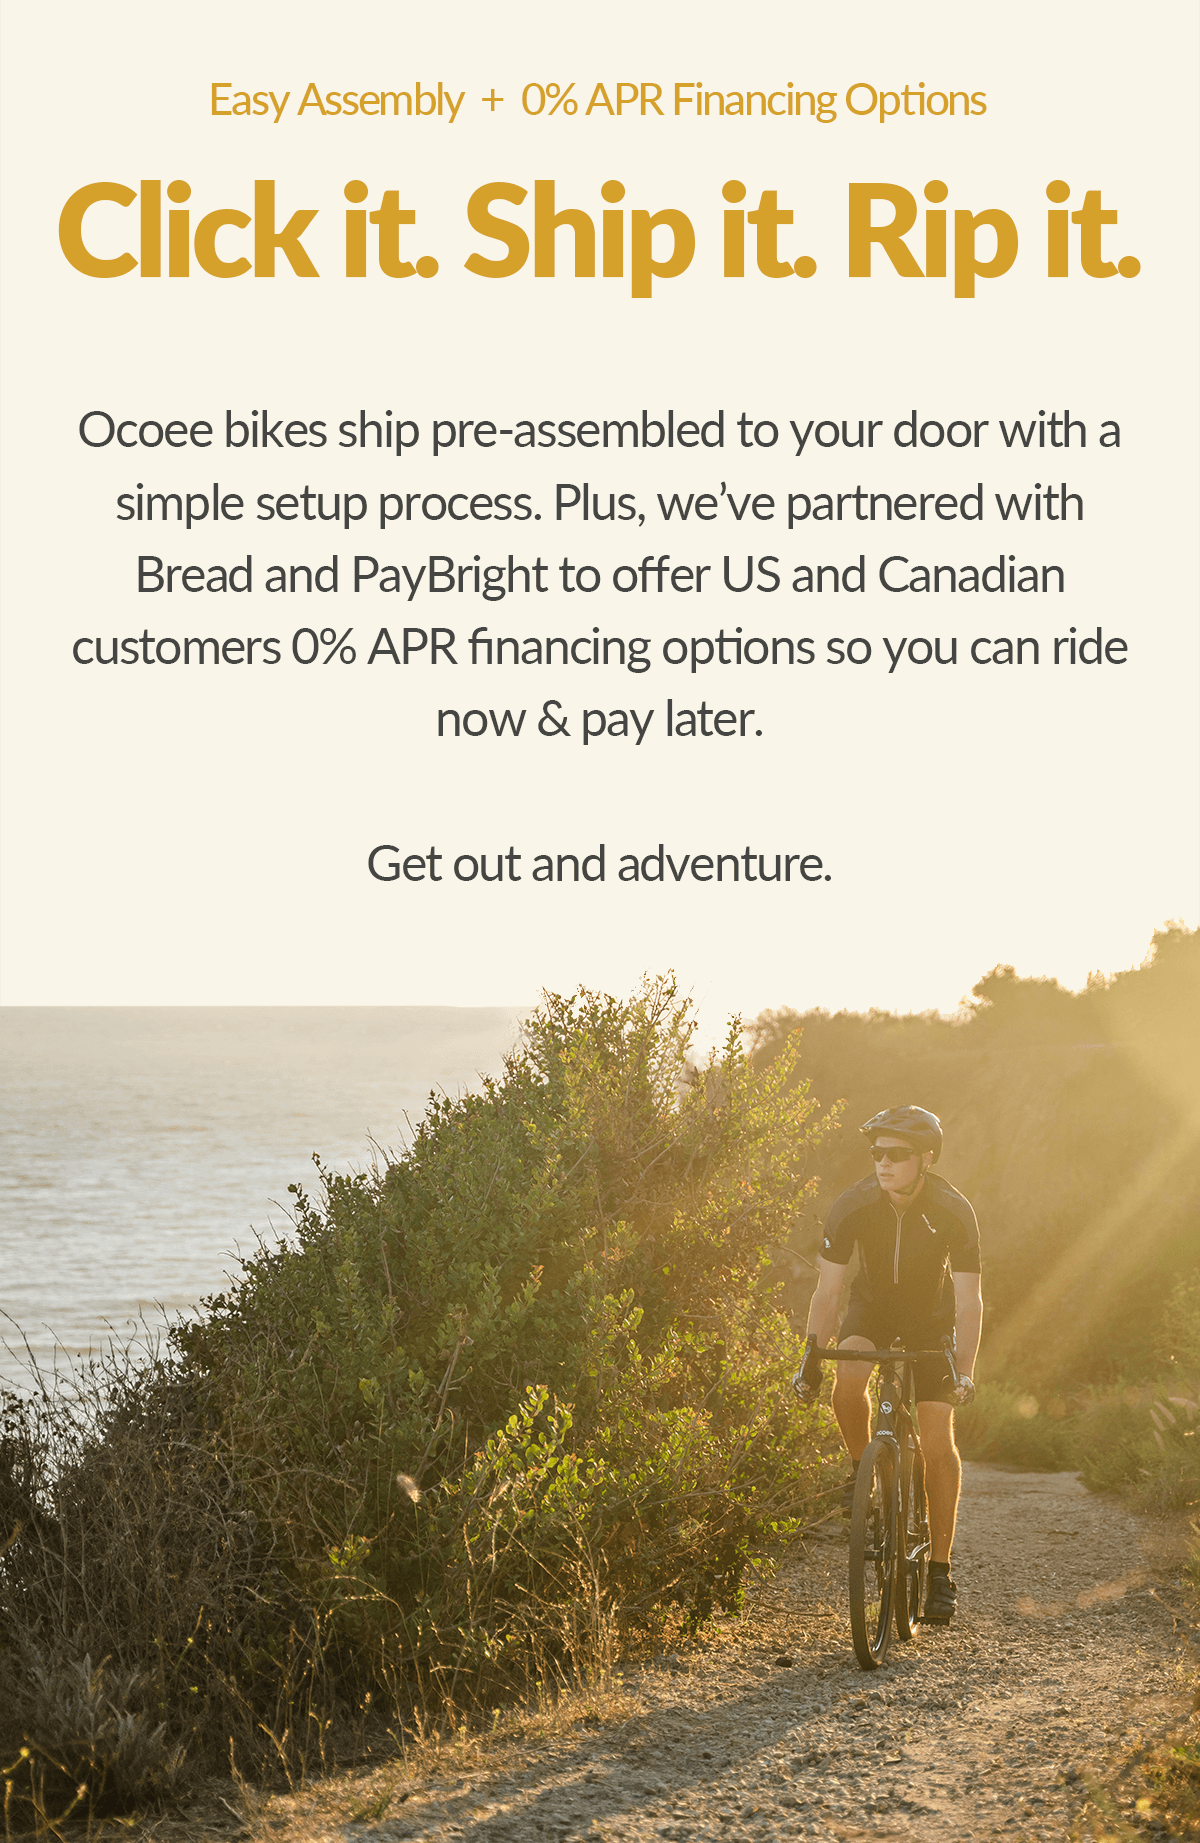 Click it. Ship it. Rip it. Ocoee bikes ship pre-assembled to your door. Plus, take advantage of financing!